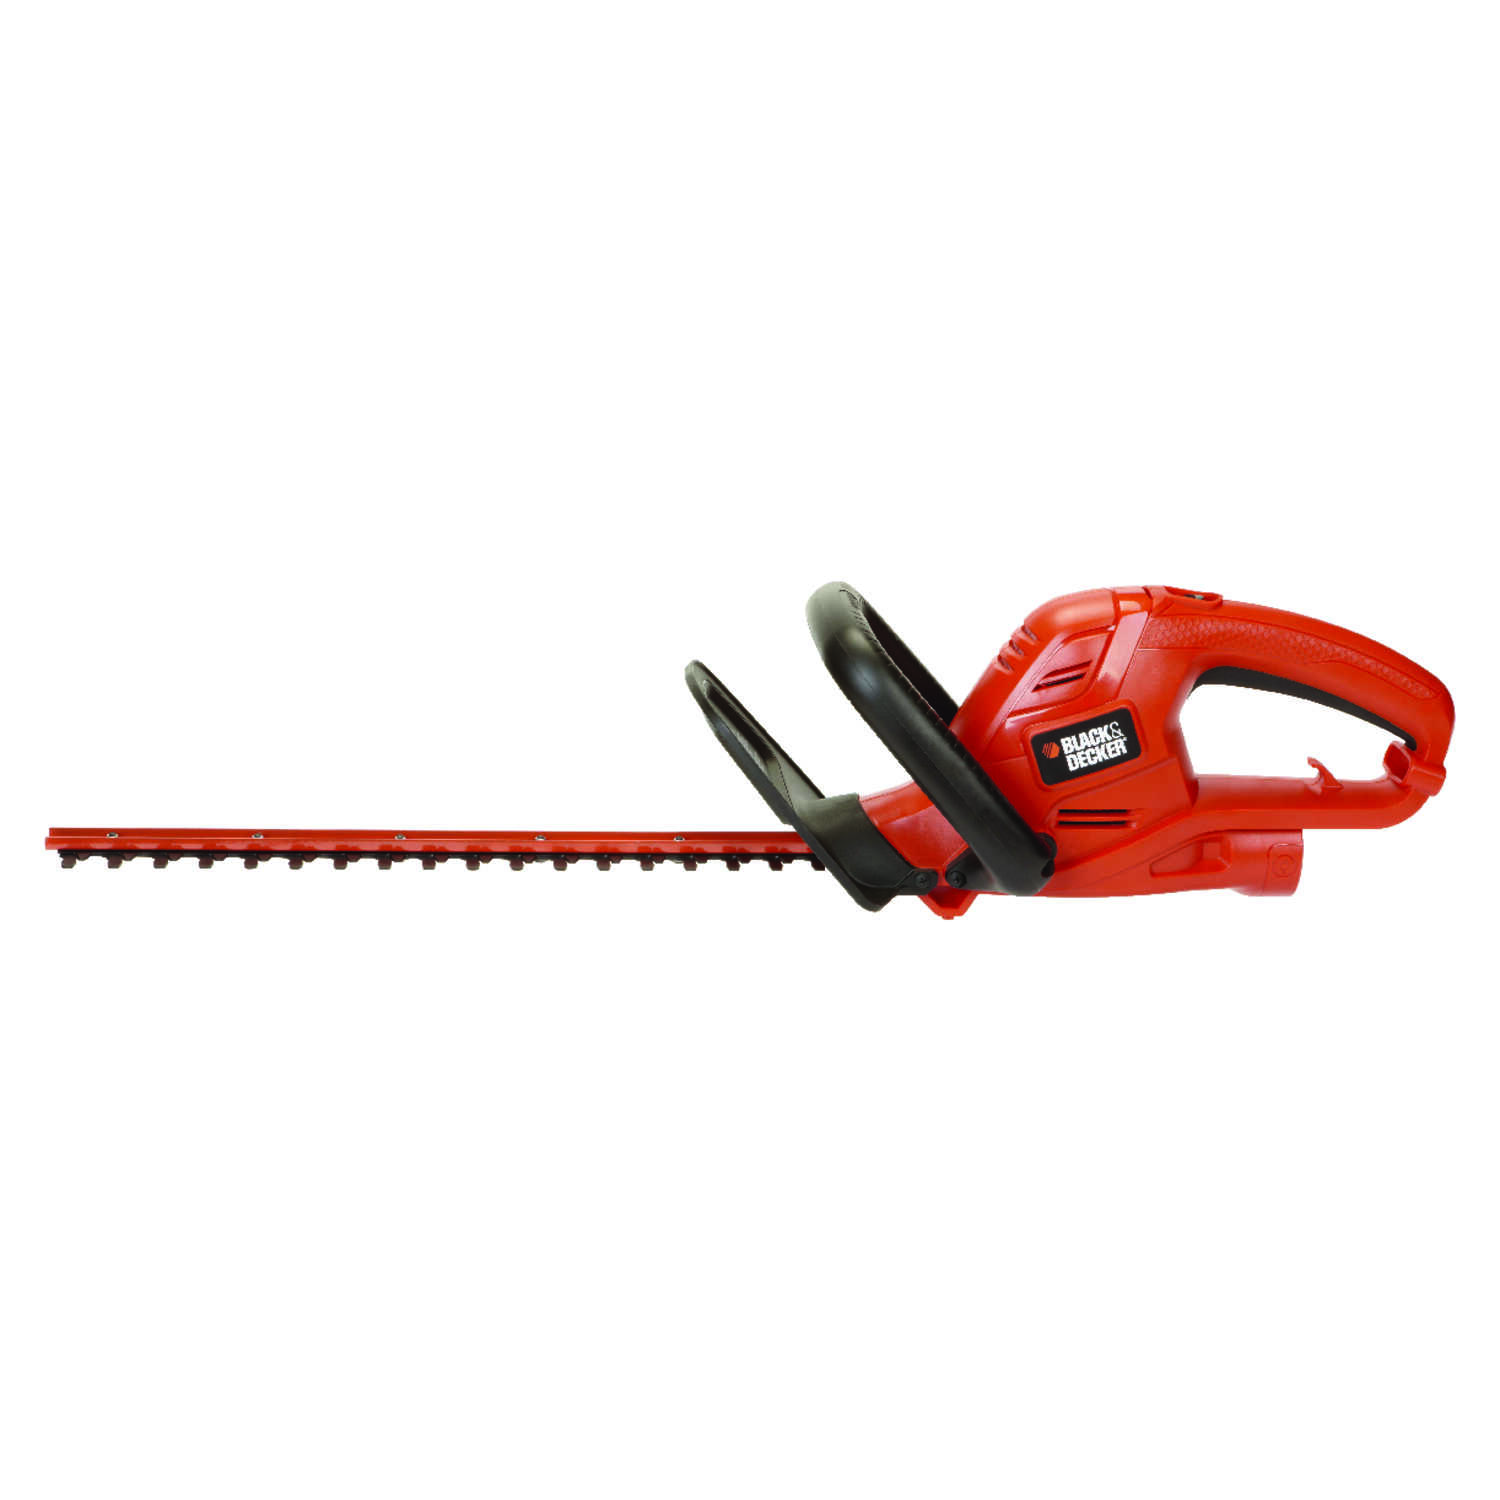 Black and Decker  18 in. L Hedge Trimmer